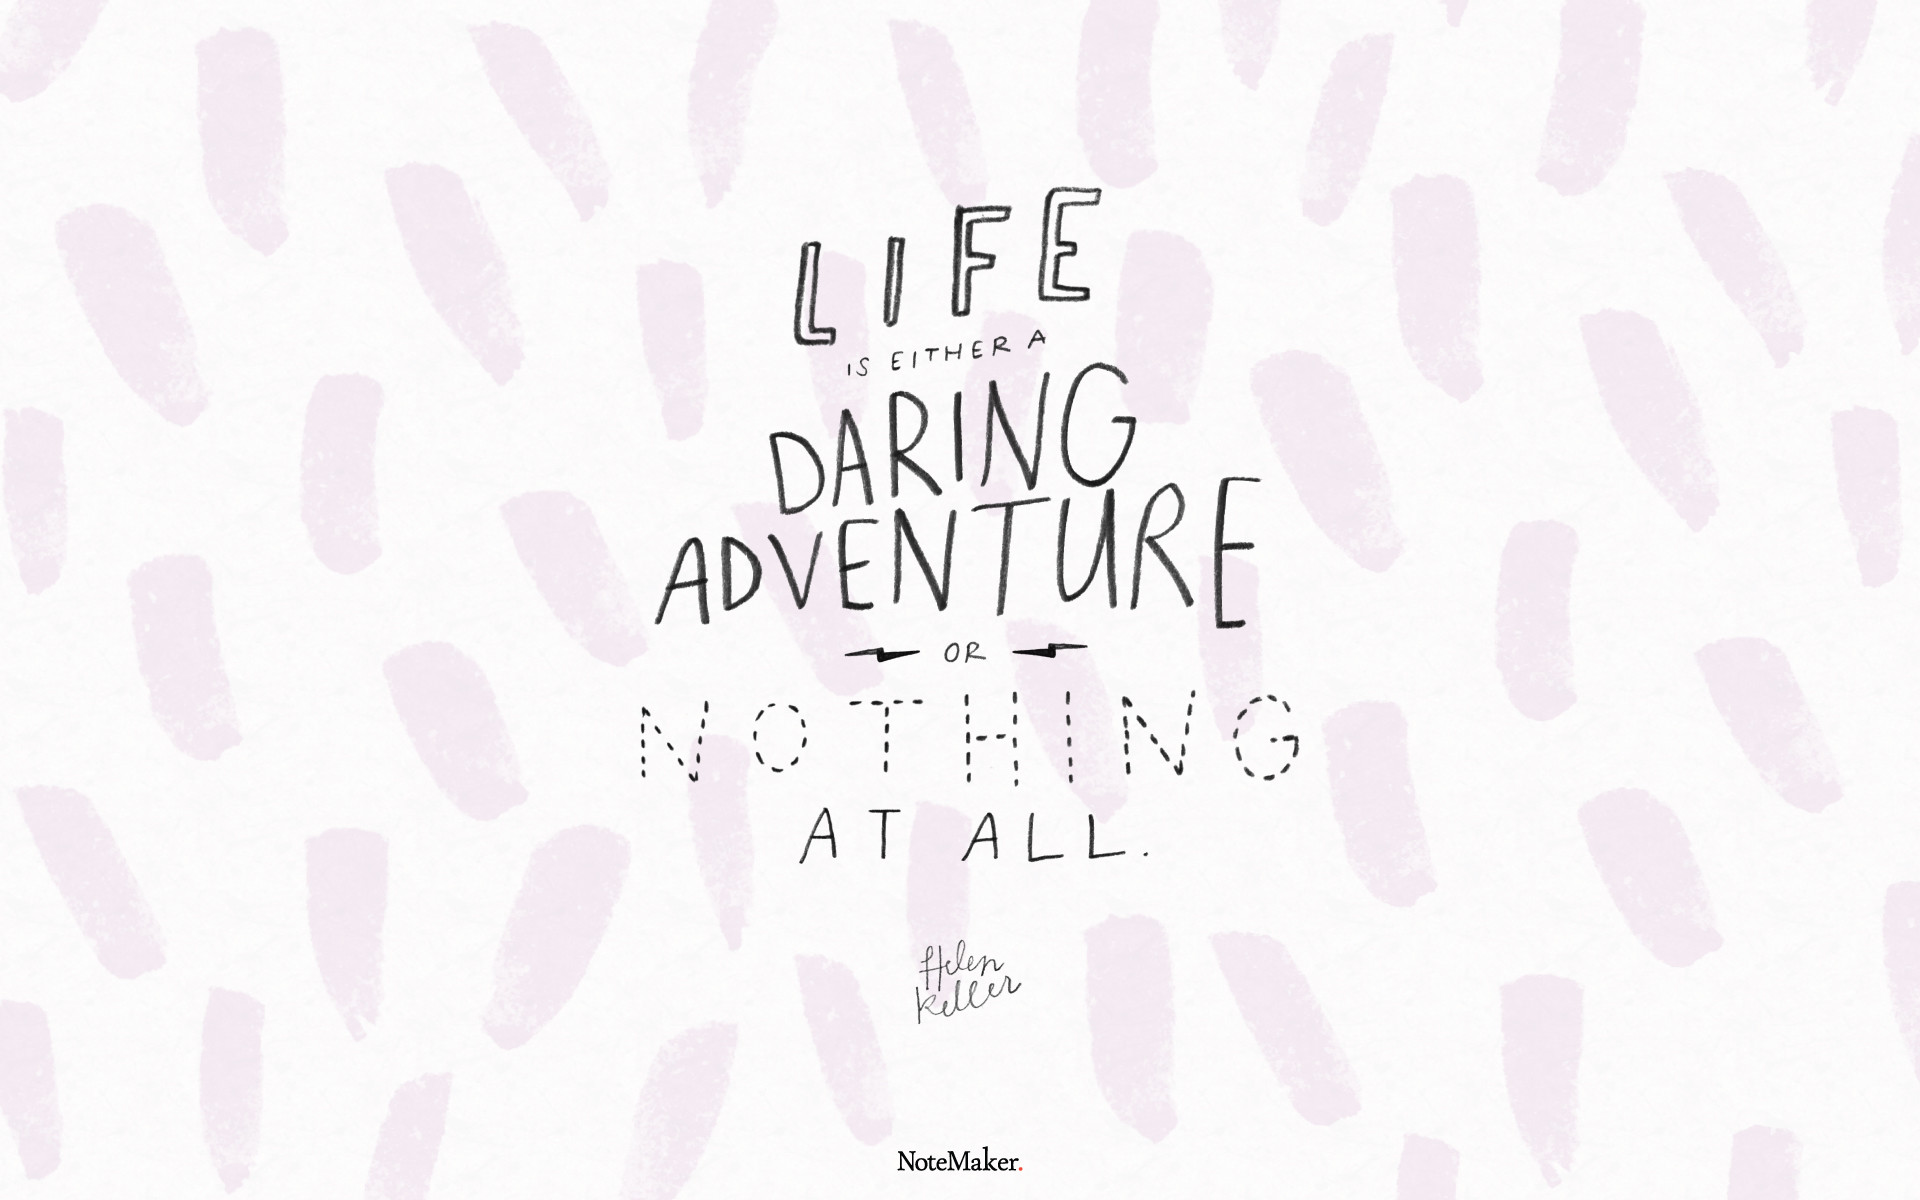 1920x1200 Inspirational Quote Life Is Either A Daring Adventure Or Nothing At All Helen Keller Desktop Wallpaper